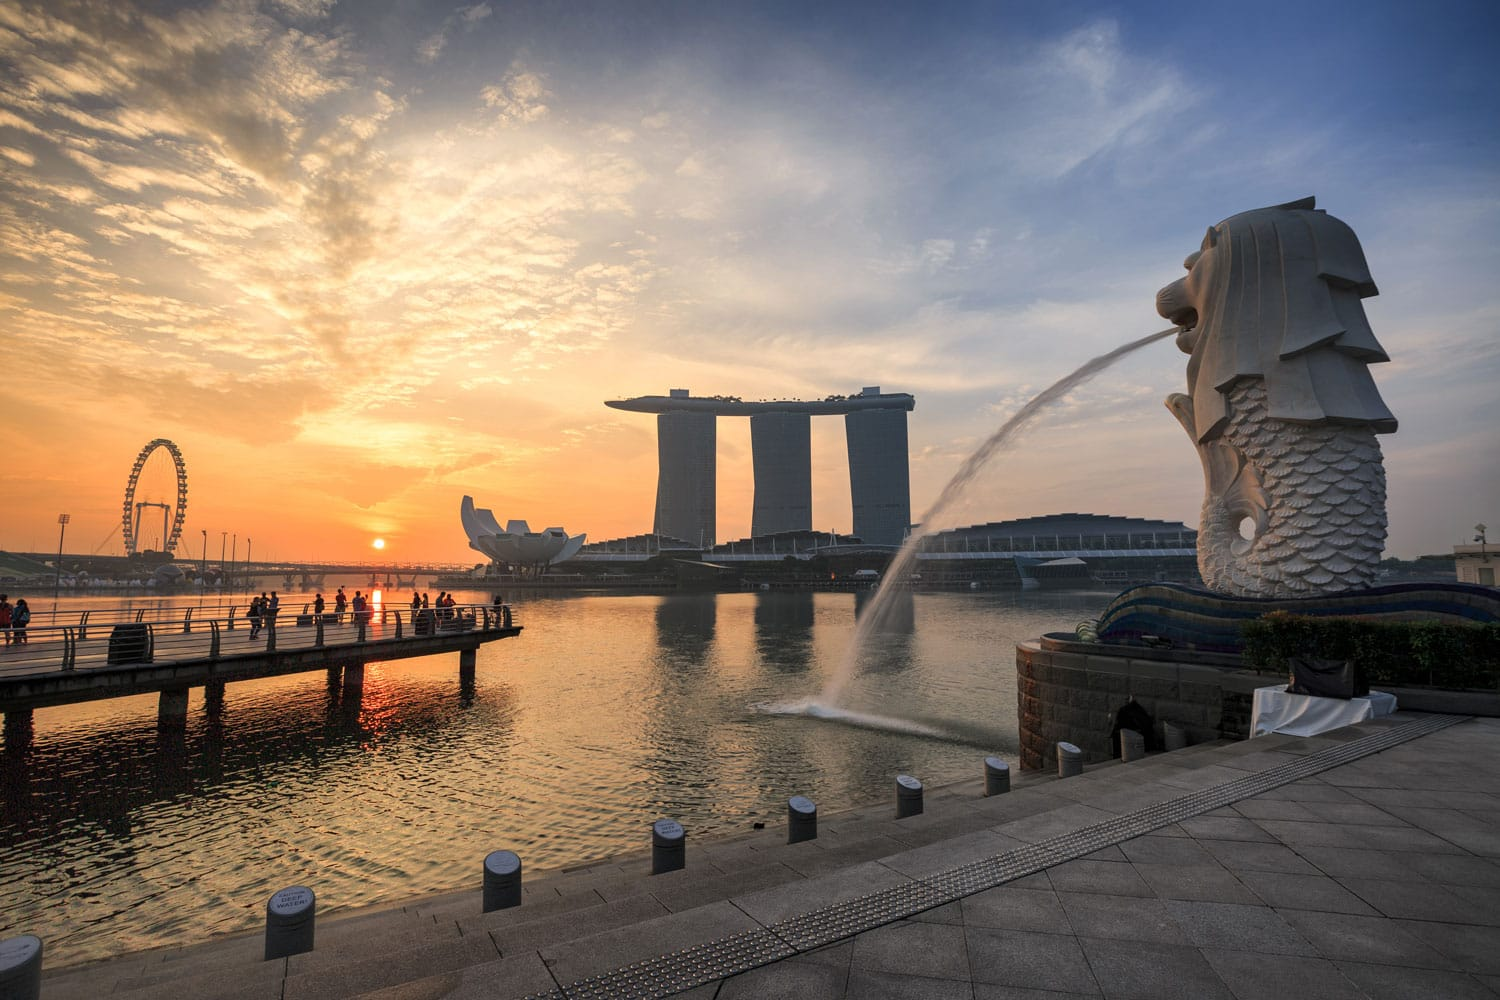 Landscape view of sunrise at Singapore landmark of Merlion and background with Marina Bay Sand building in Singapore